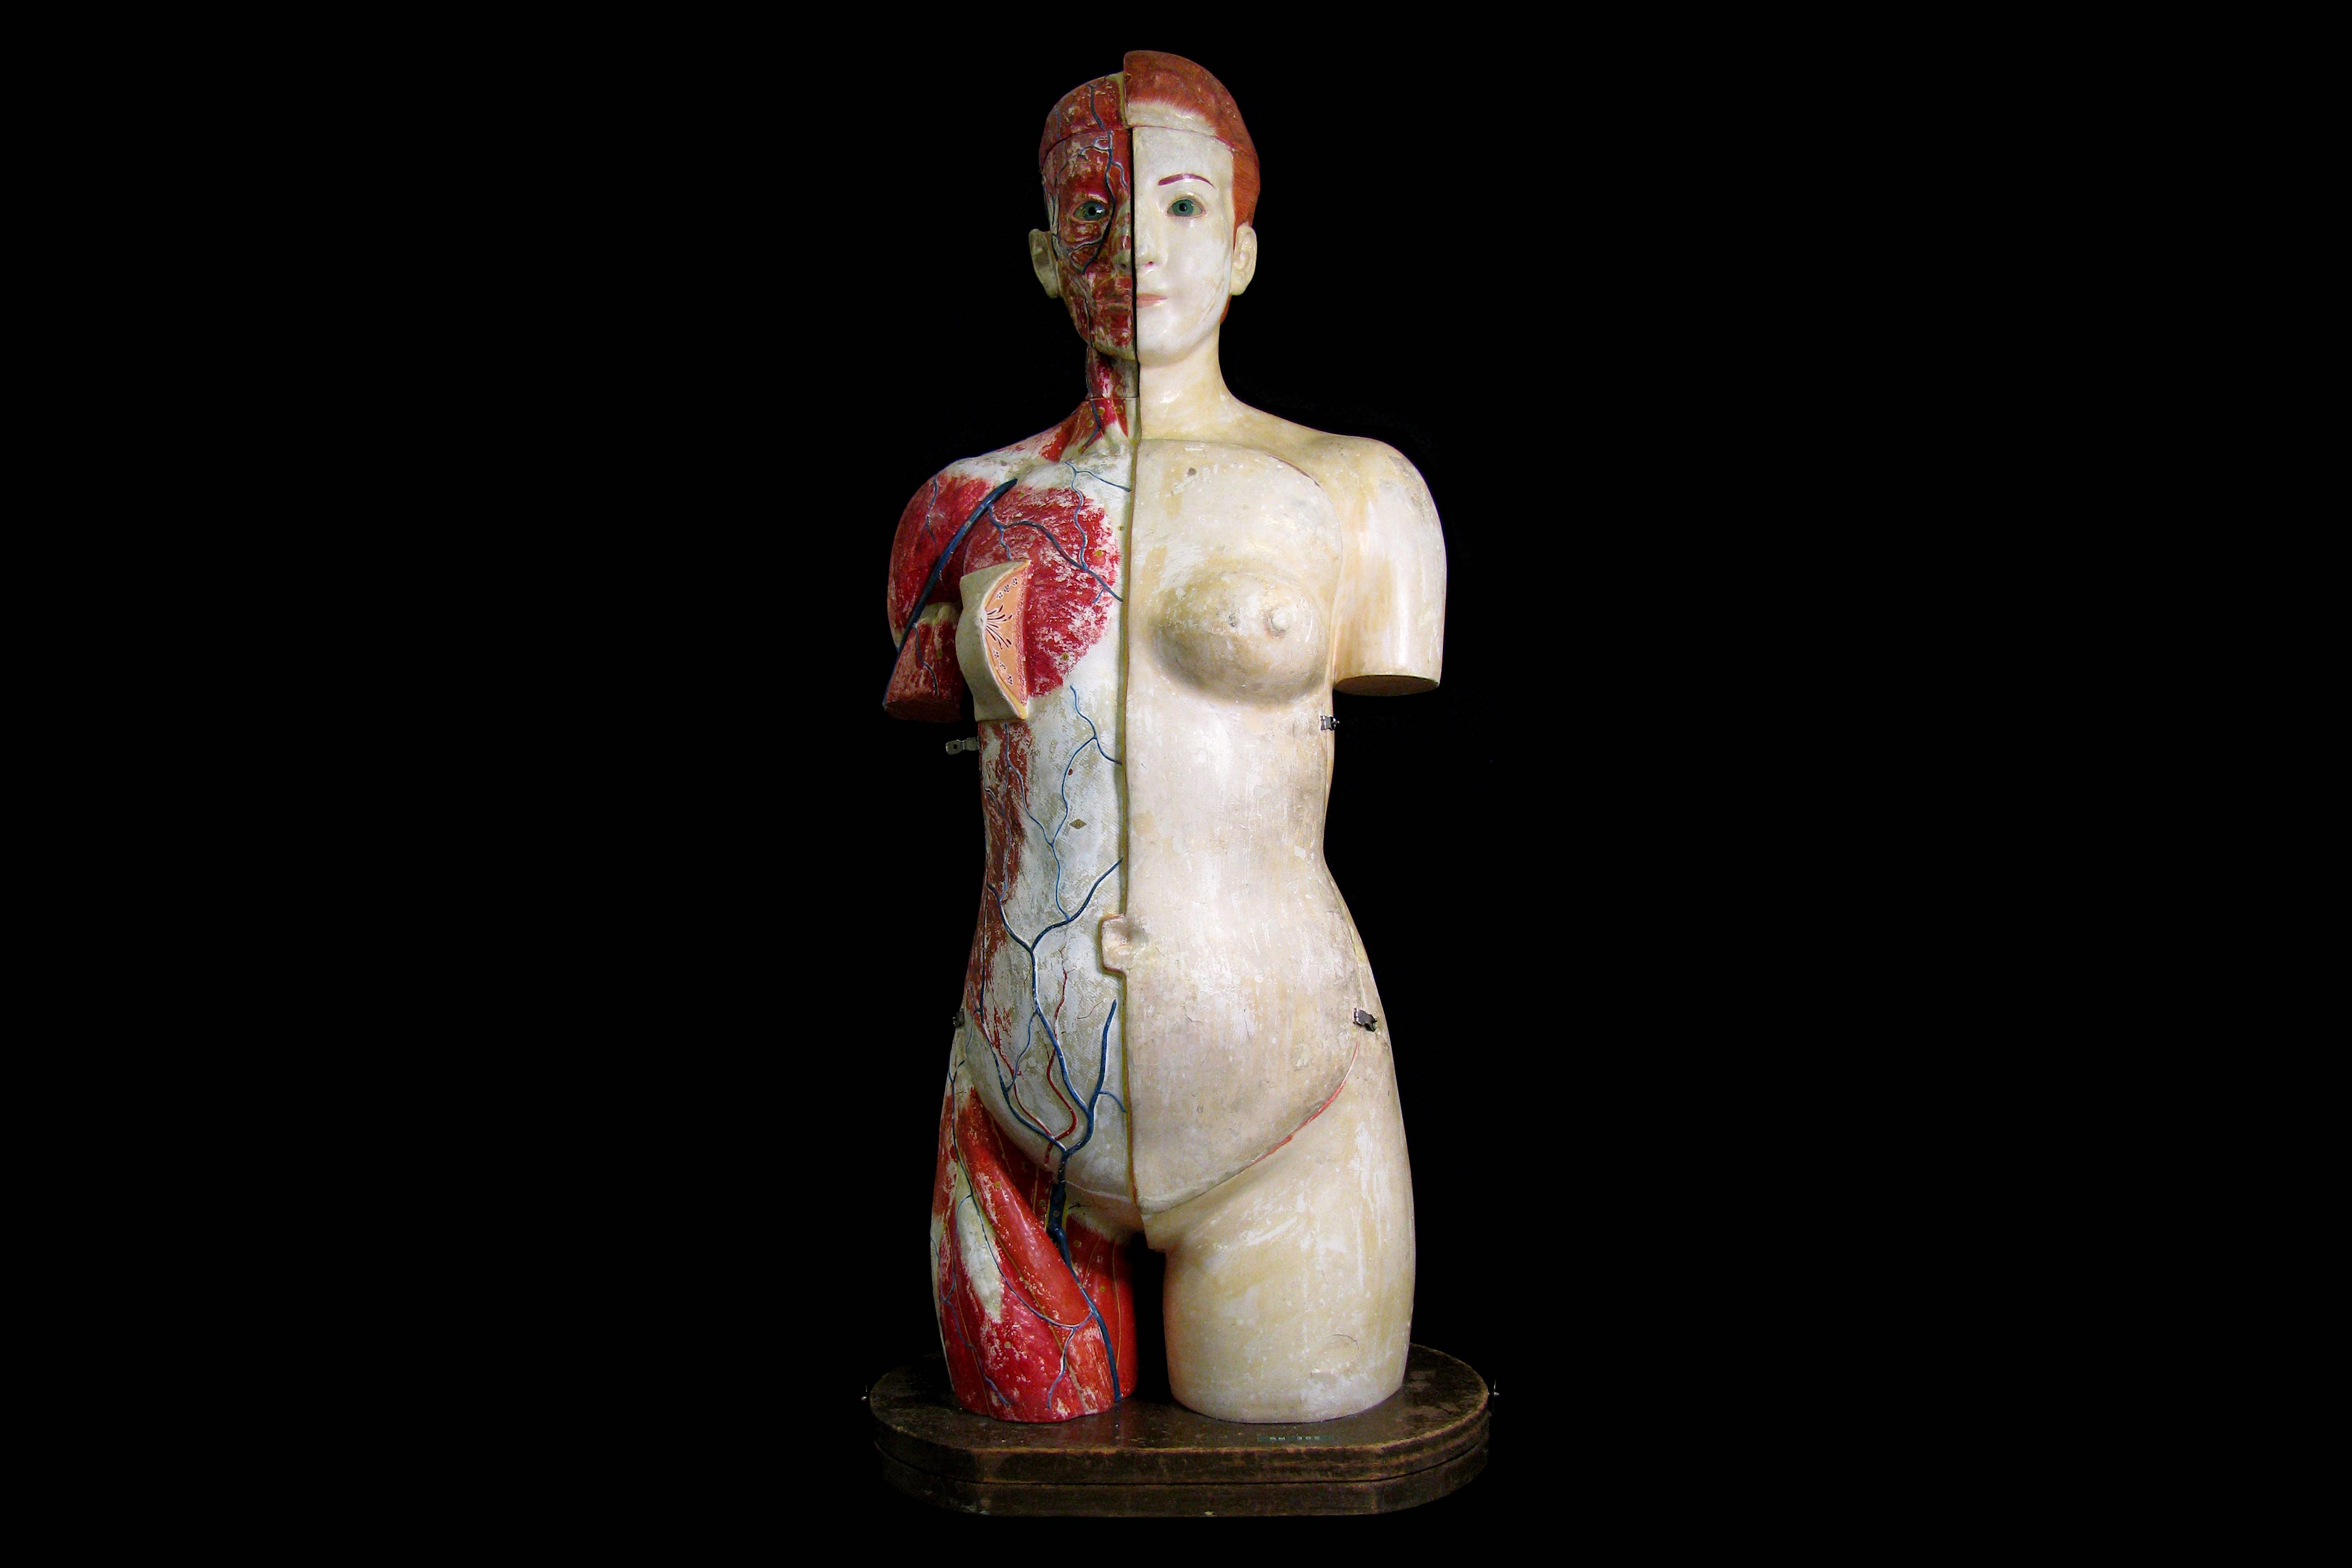 A FINE 1930'S JAPANESE LIFE-SIZE ANATOMICAL MODEL TORSO OF THE FEMALE FIGURE PRODUCED IN 1934 BY THE - Image 2 of 9